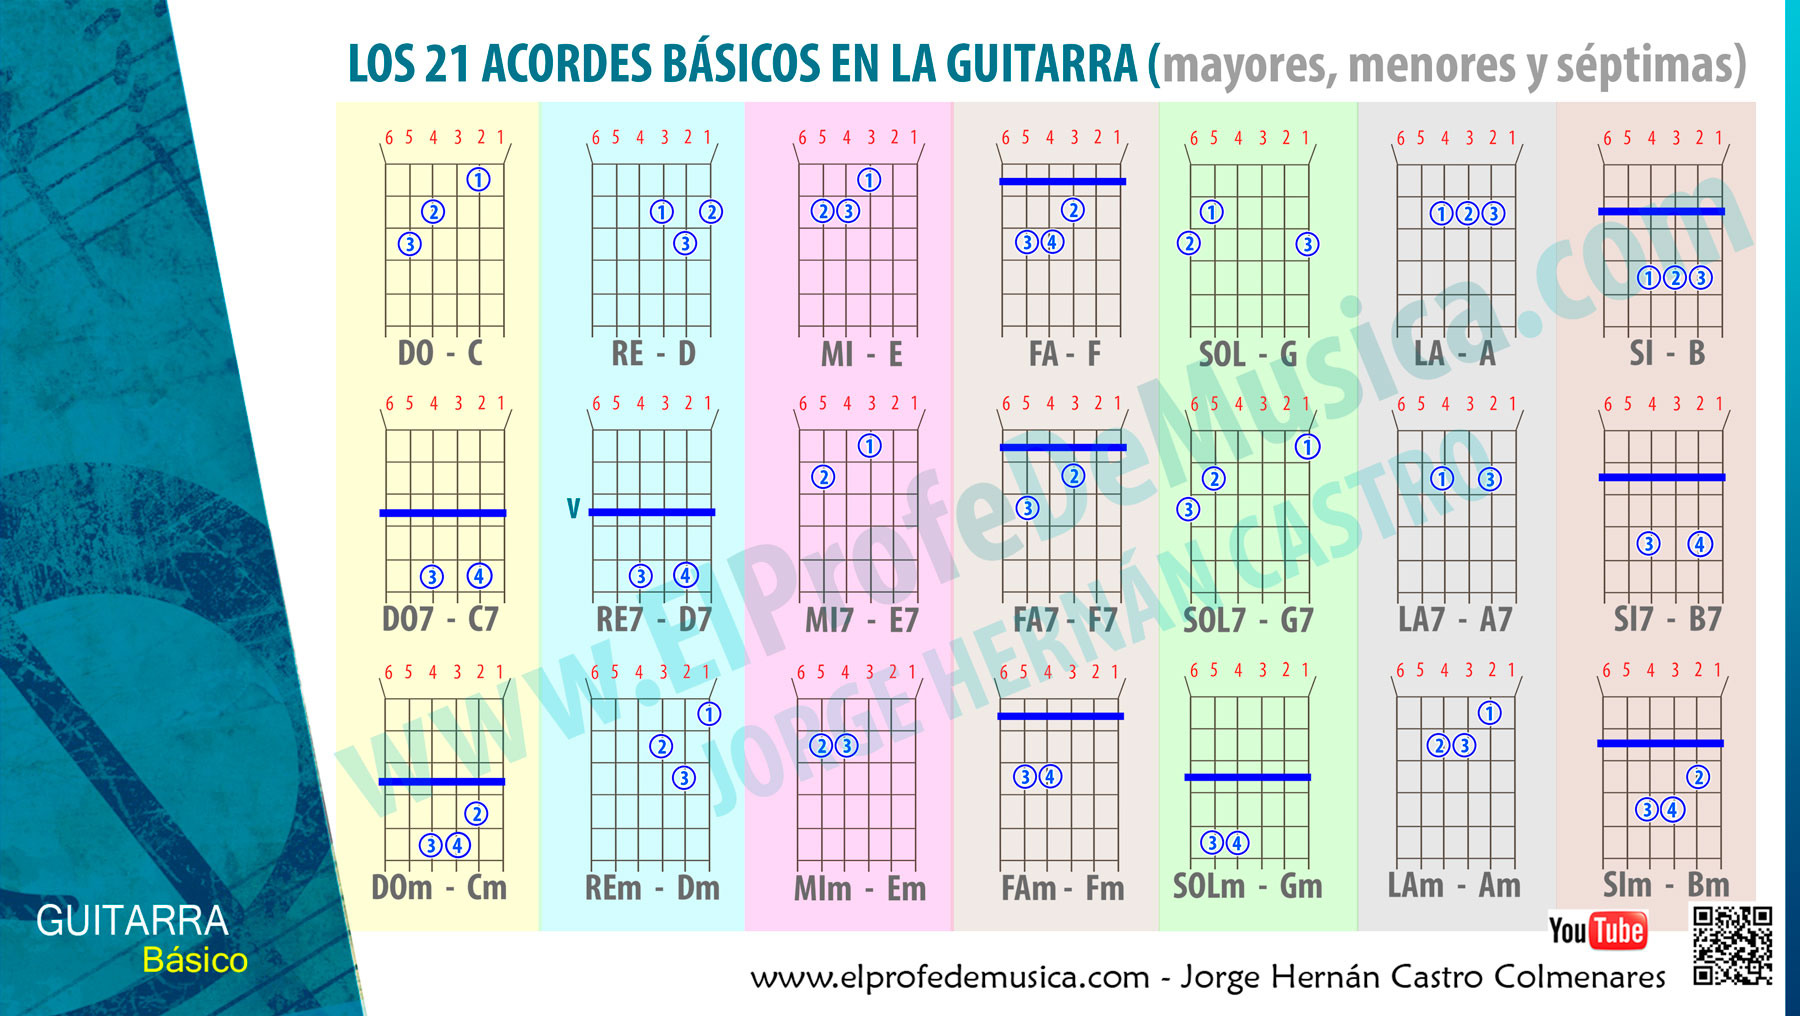 escalas mayores sostenidos tetracordios quitntas escala moyor musica do sol re la mi si teoria musical el profe de musica jorge castro 2